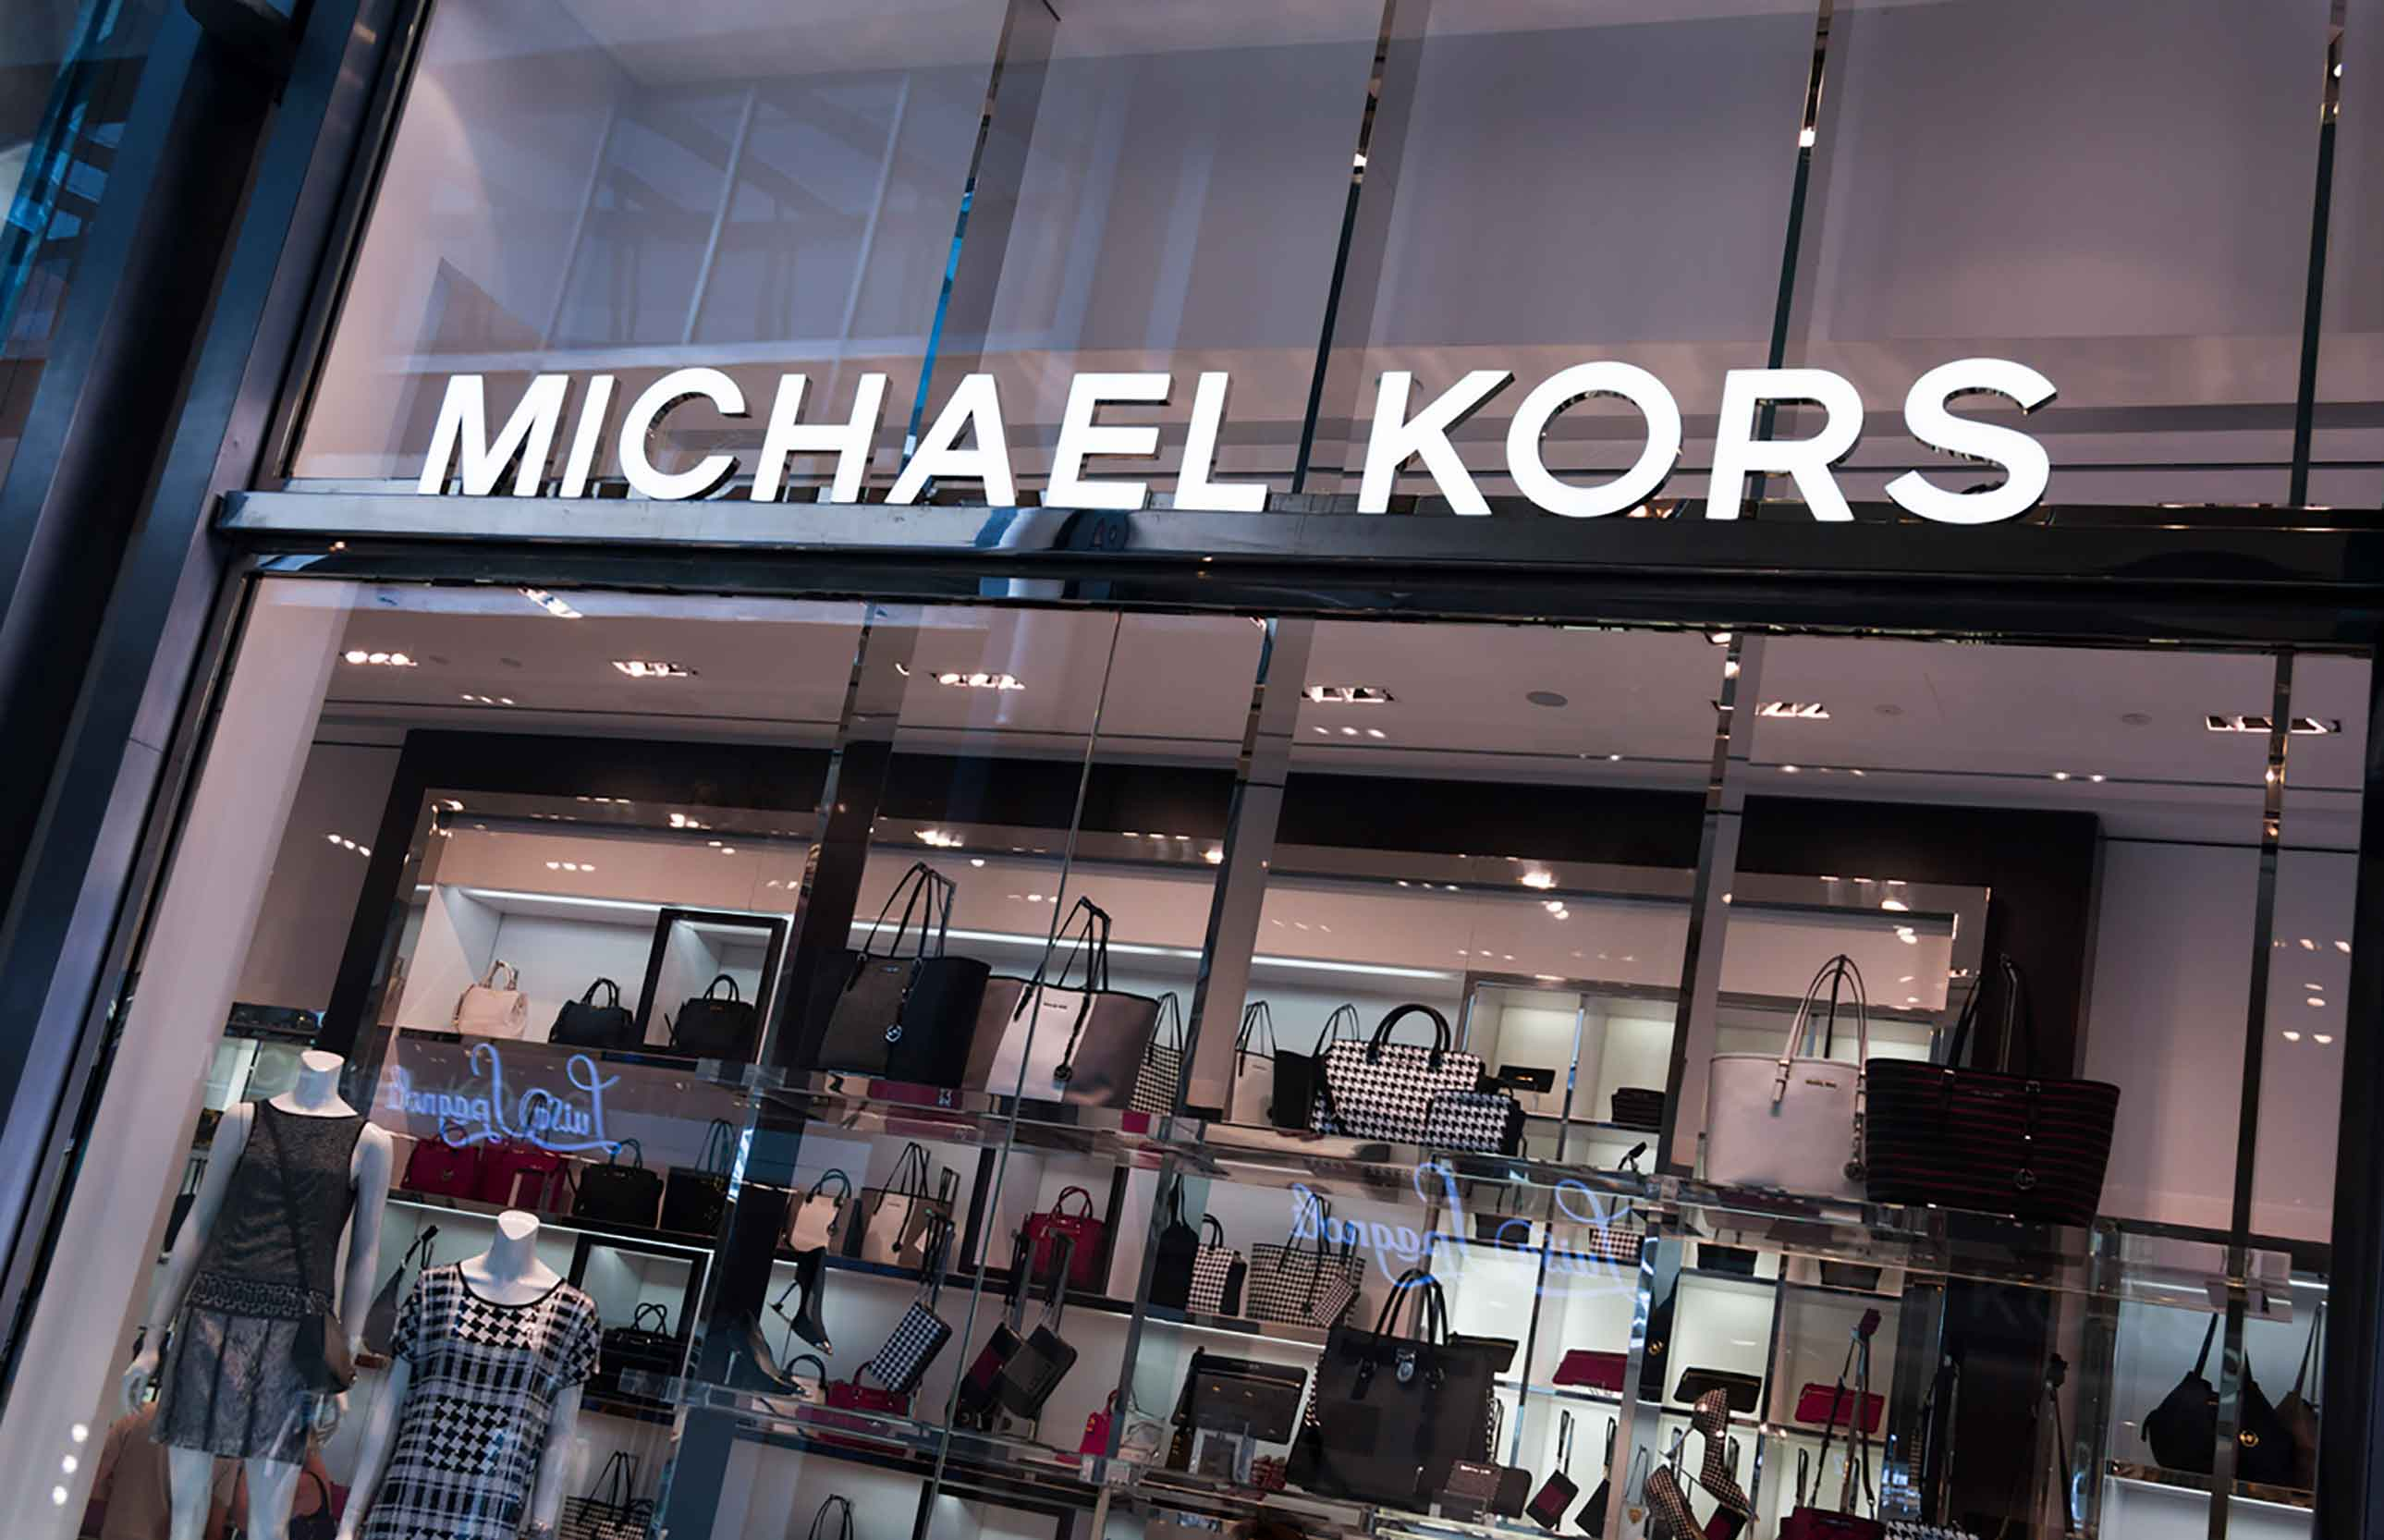 39f529d121c6 13 Ways to Save at Michael Kors | Credit.com